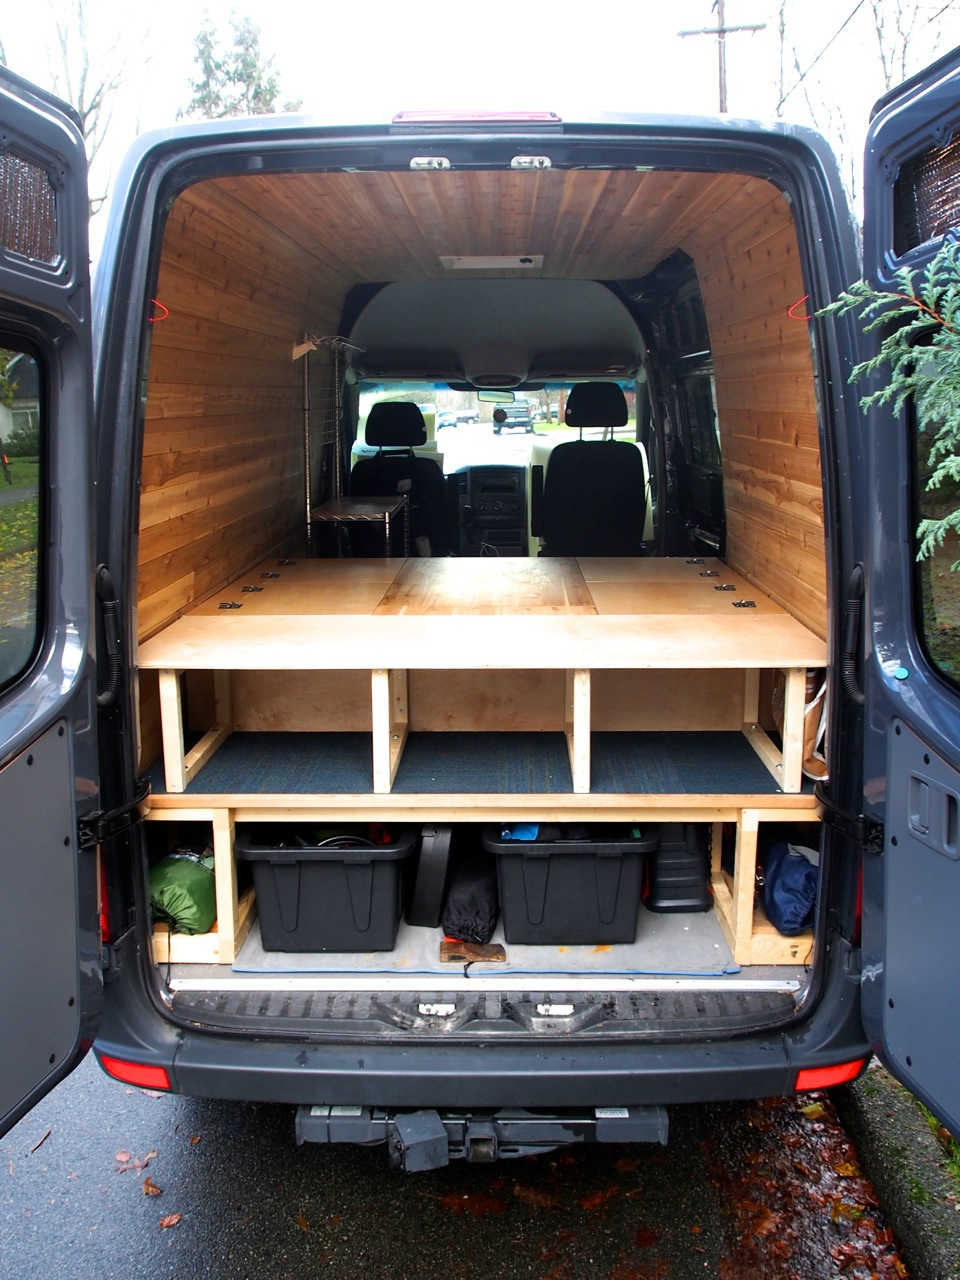 Bed Table And Benches For Camper Van All In One 19 Steps With Pictures Instructables